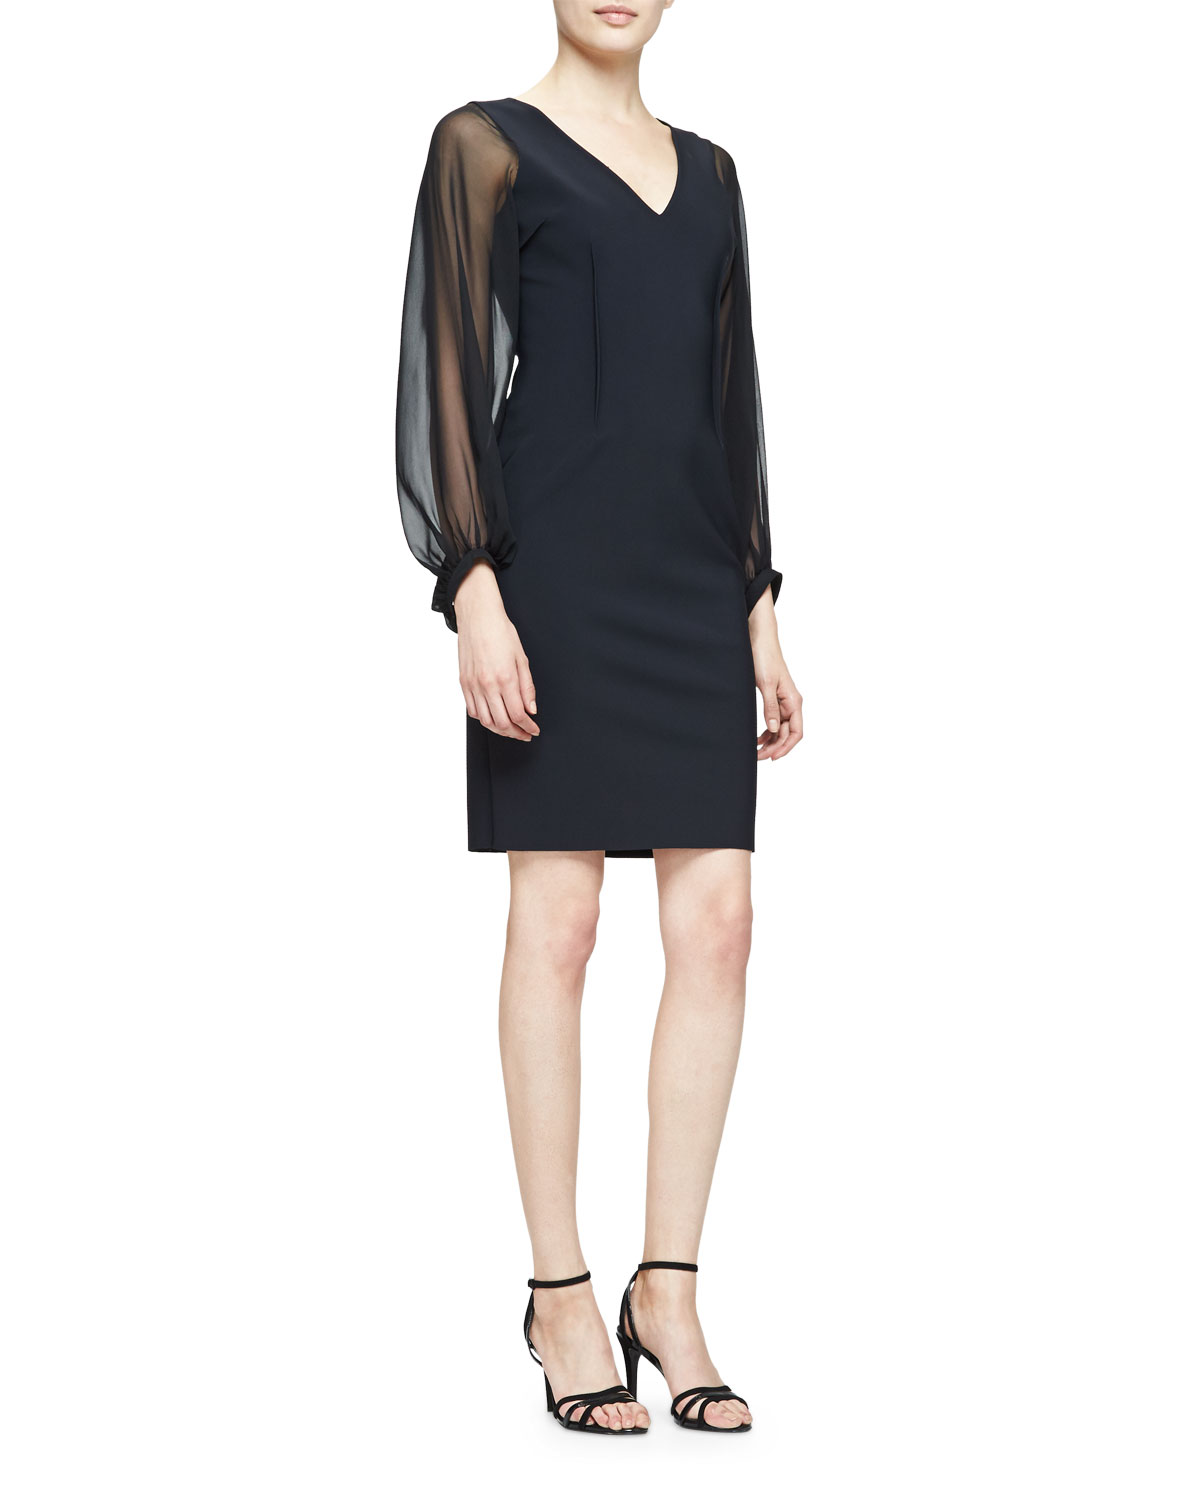 Long-Sheer-Sleeve Sheath Cocktail Dress, Black